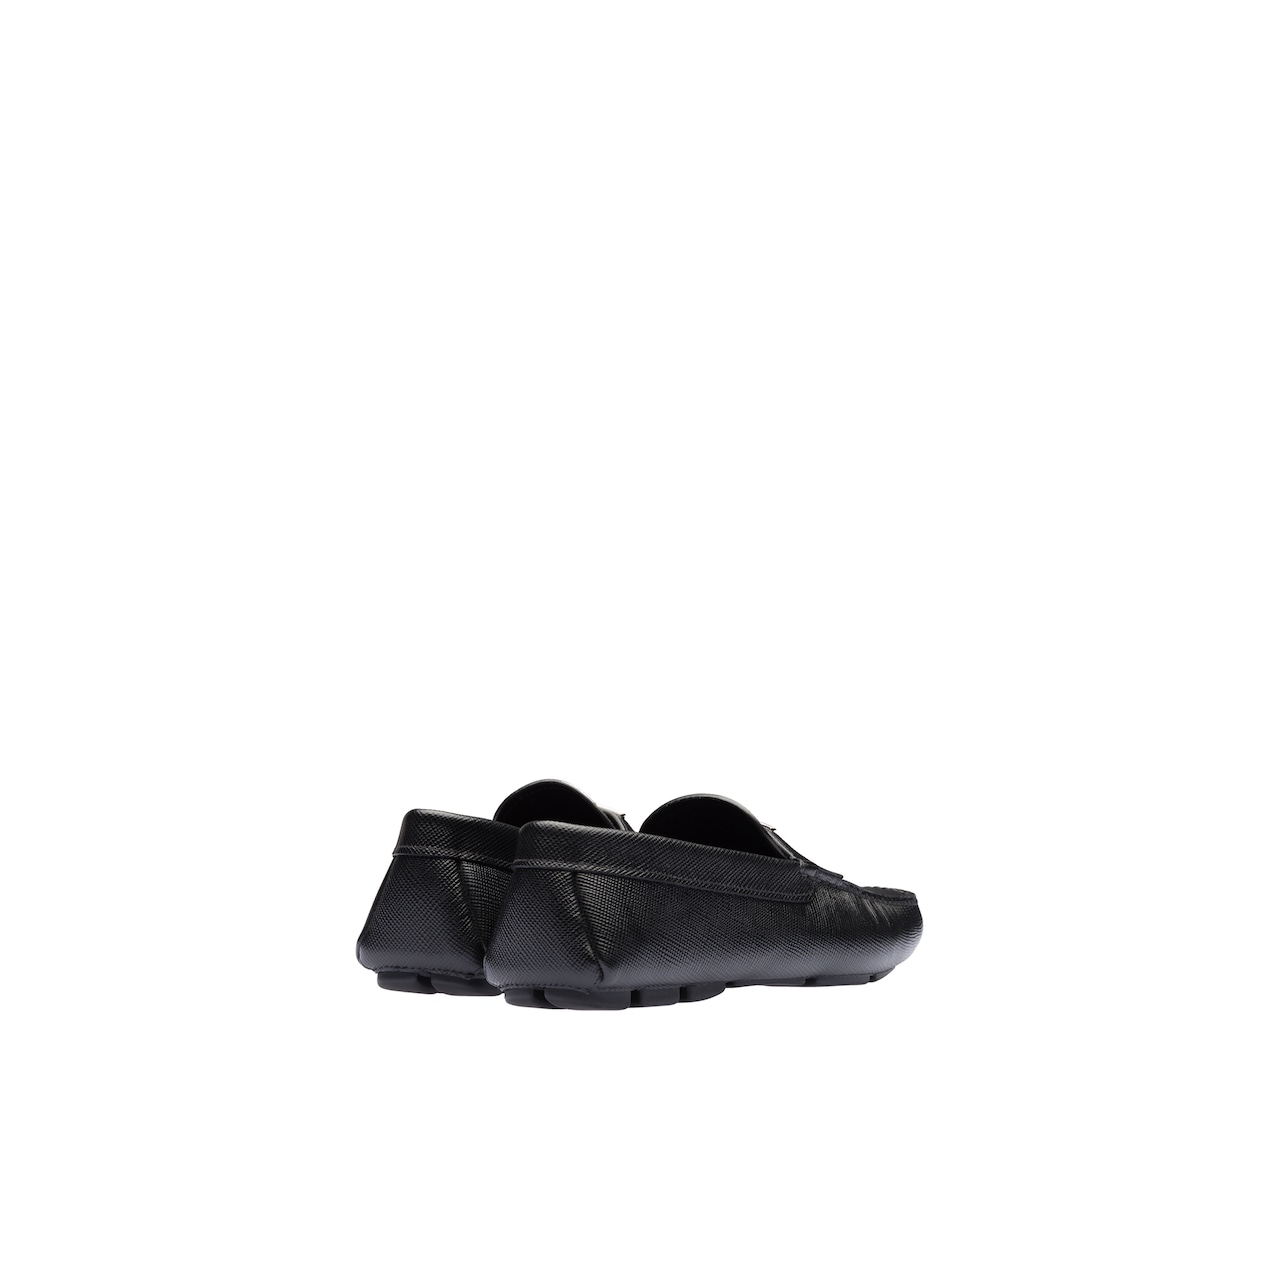 Saffiano Cuir loafers